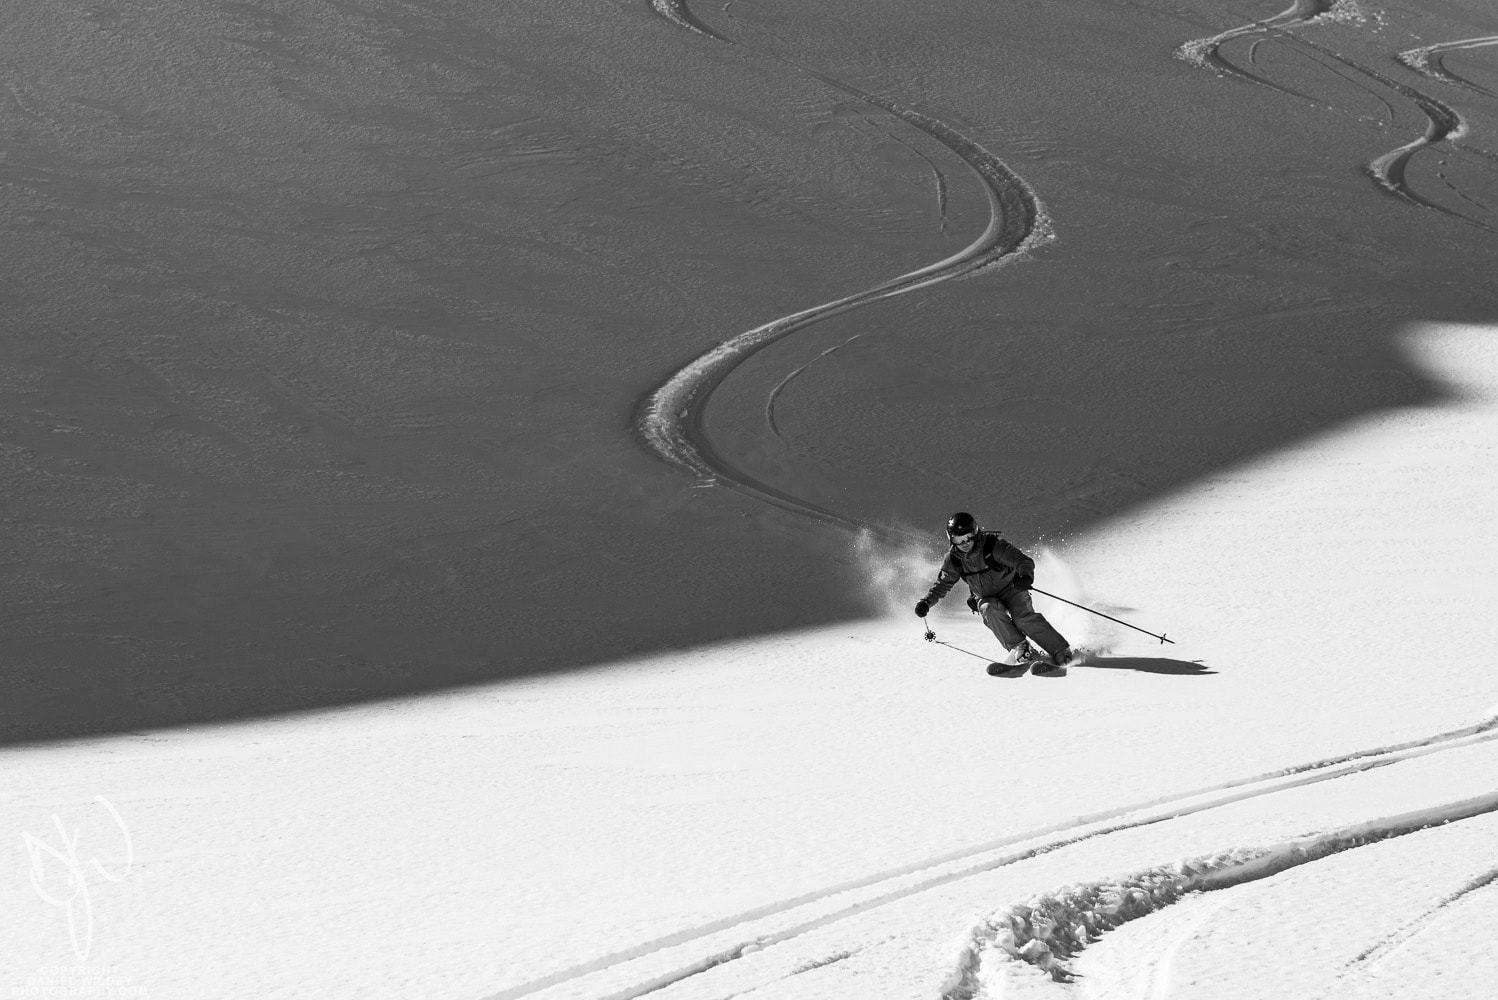 The Jöttnar Guides - Layering for Piste Skiing